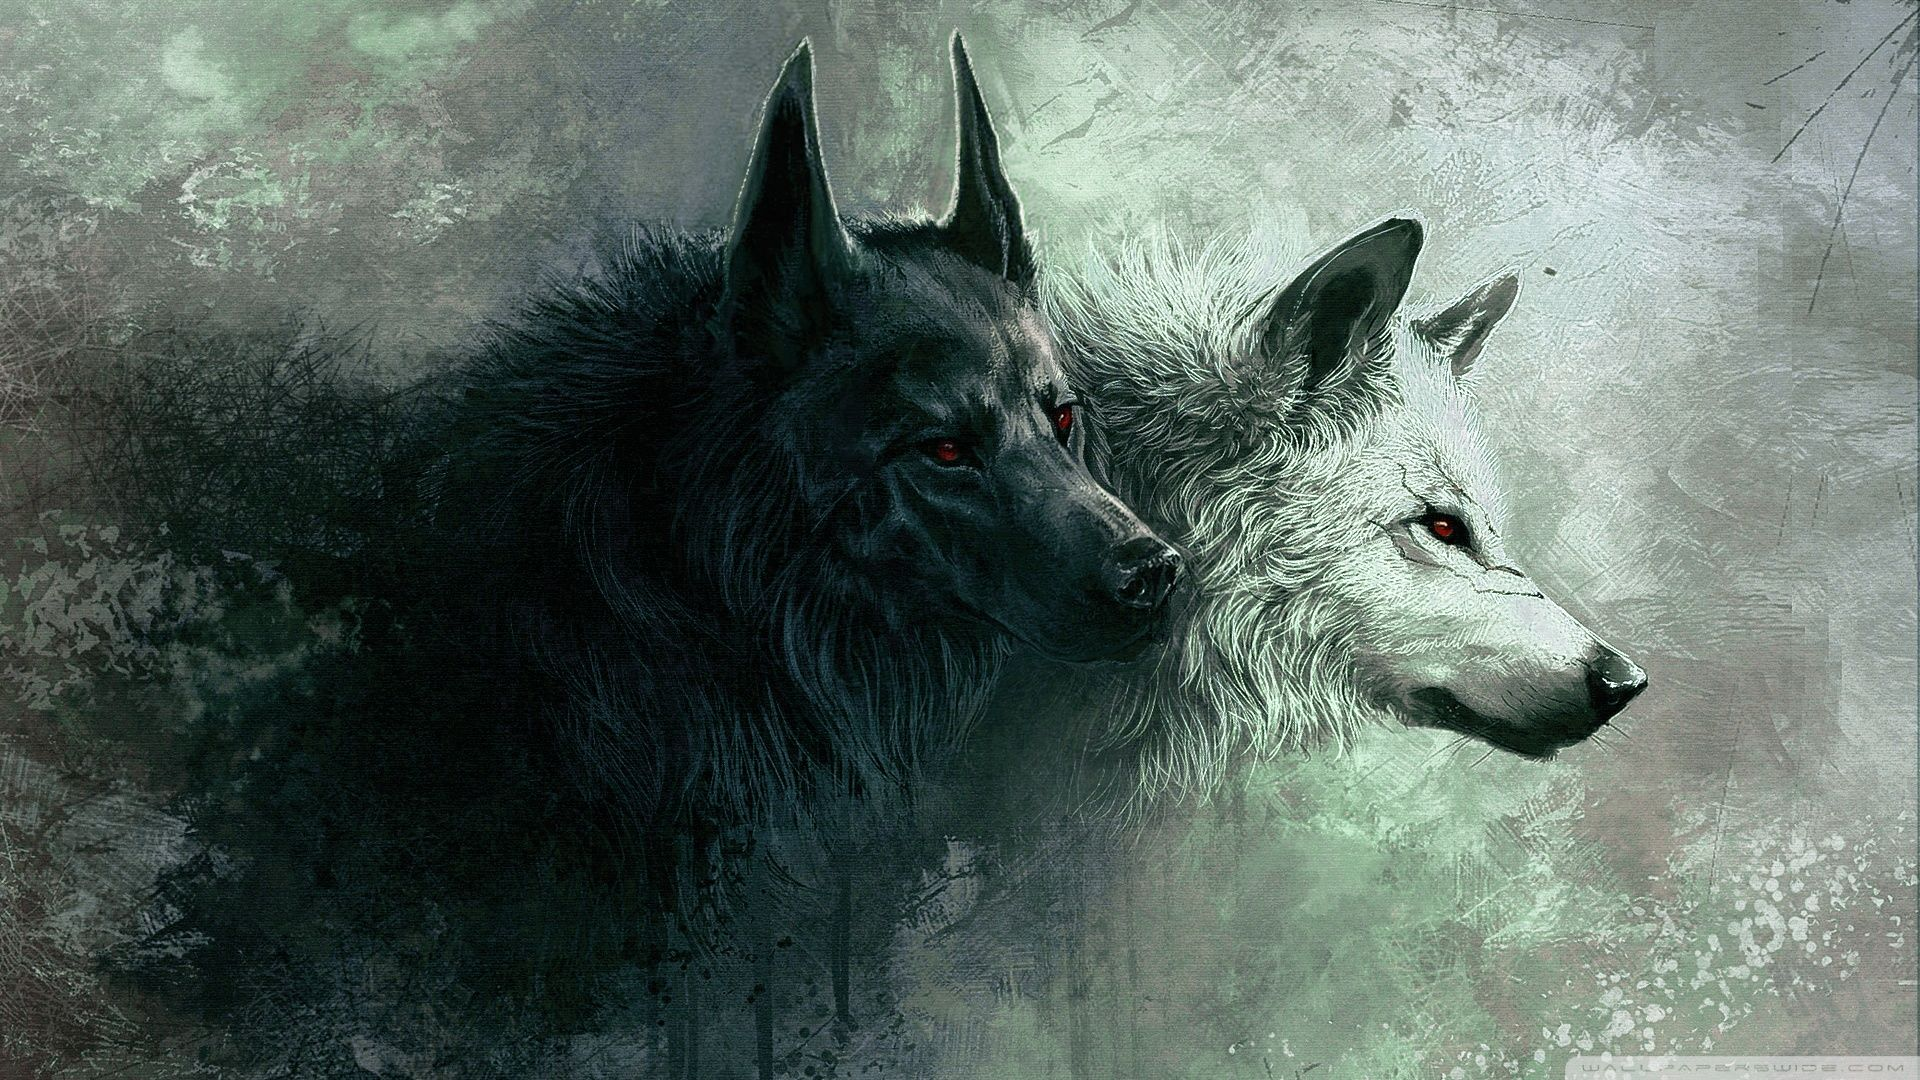 Iphone wallpaper tumblr wolf - Lone Wolf Wallpaper 1280 1024 Lone Wolf Wallpapers 38 Wallpapers Adorable Wallpapers Desktop Pinterest Wolf Wallpaper Wallpaper And Fantasy Wolf